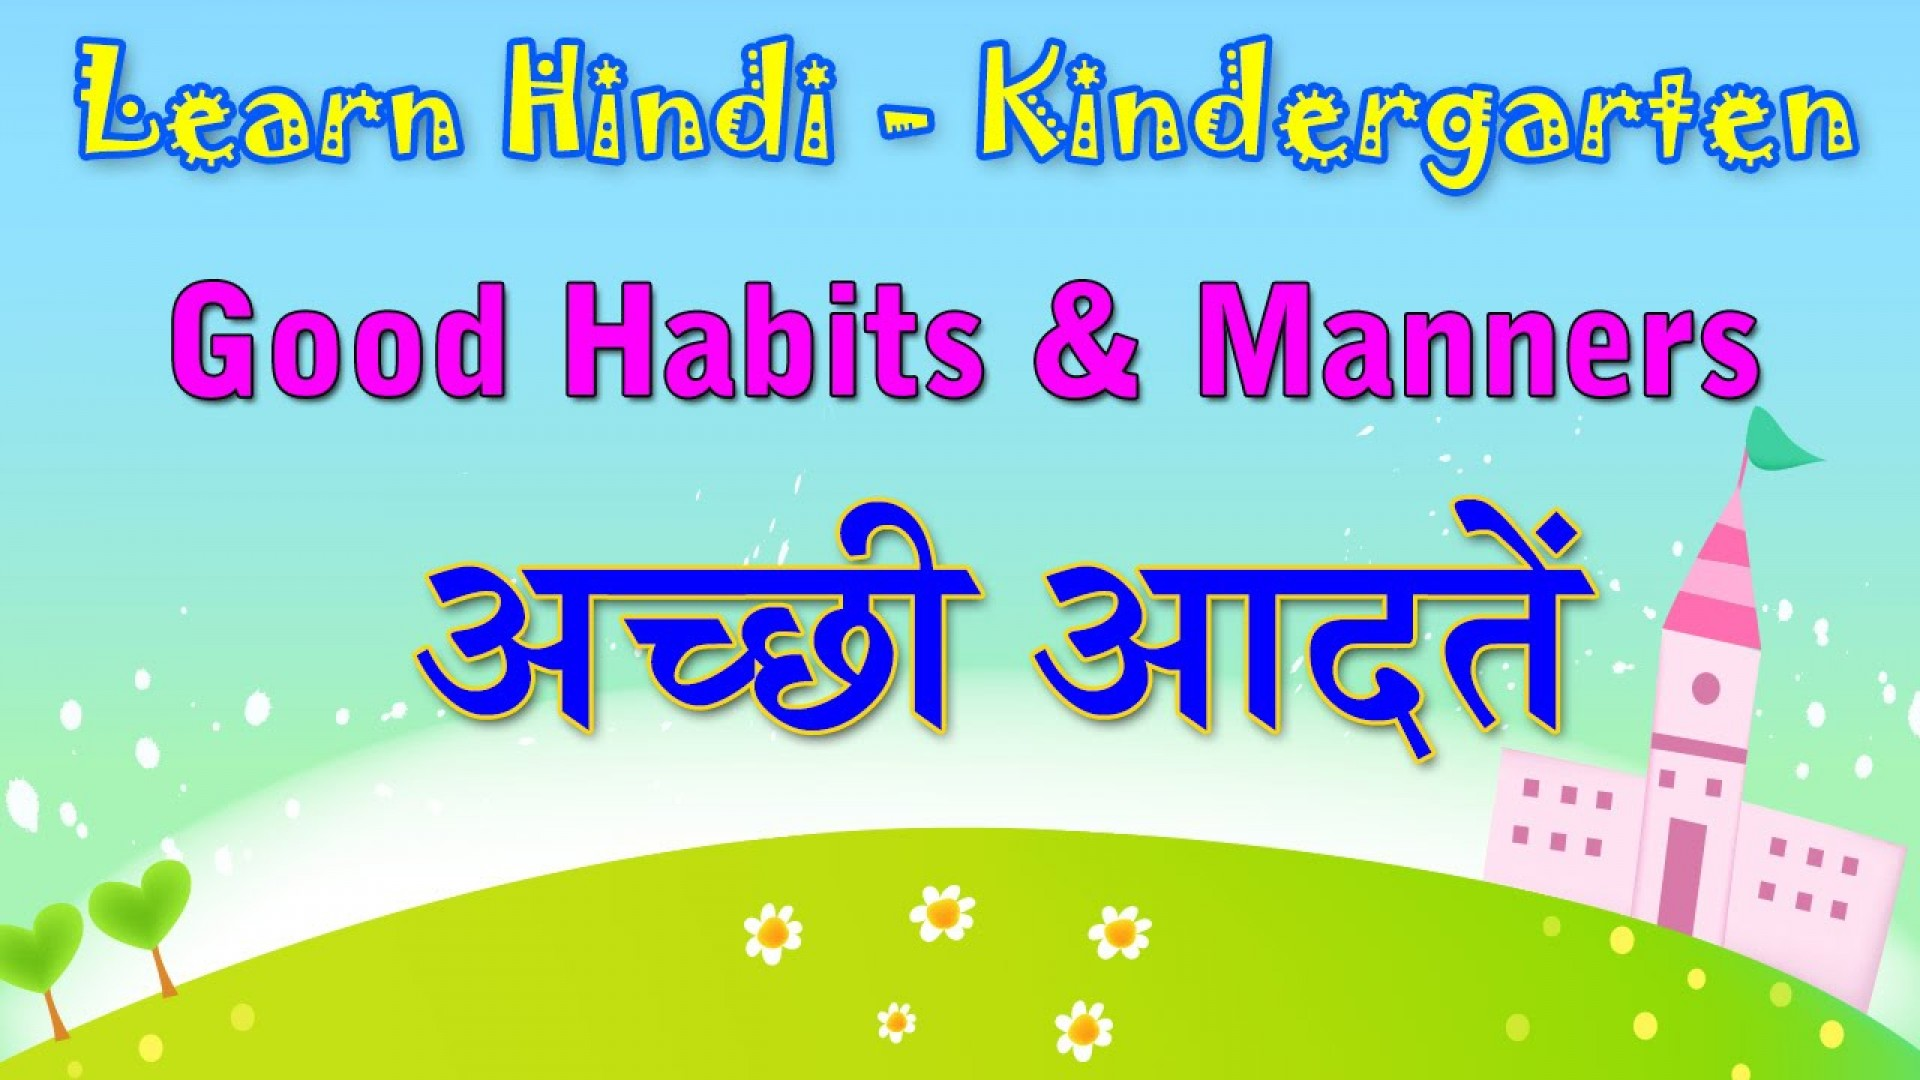 004 Essay Example Good Habits In Hindi Exceptional Habit Wikipedia Eating 1920